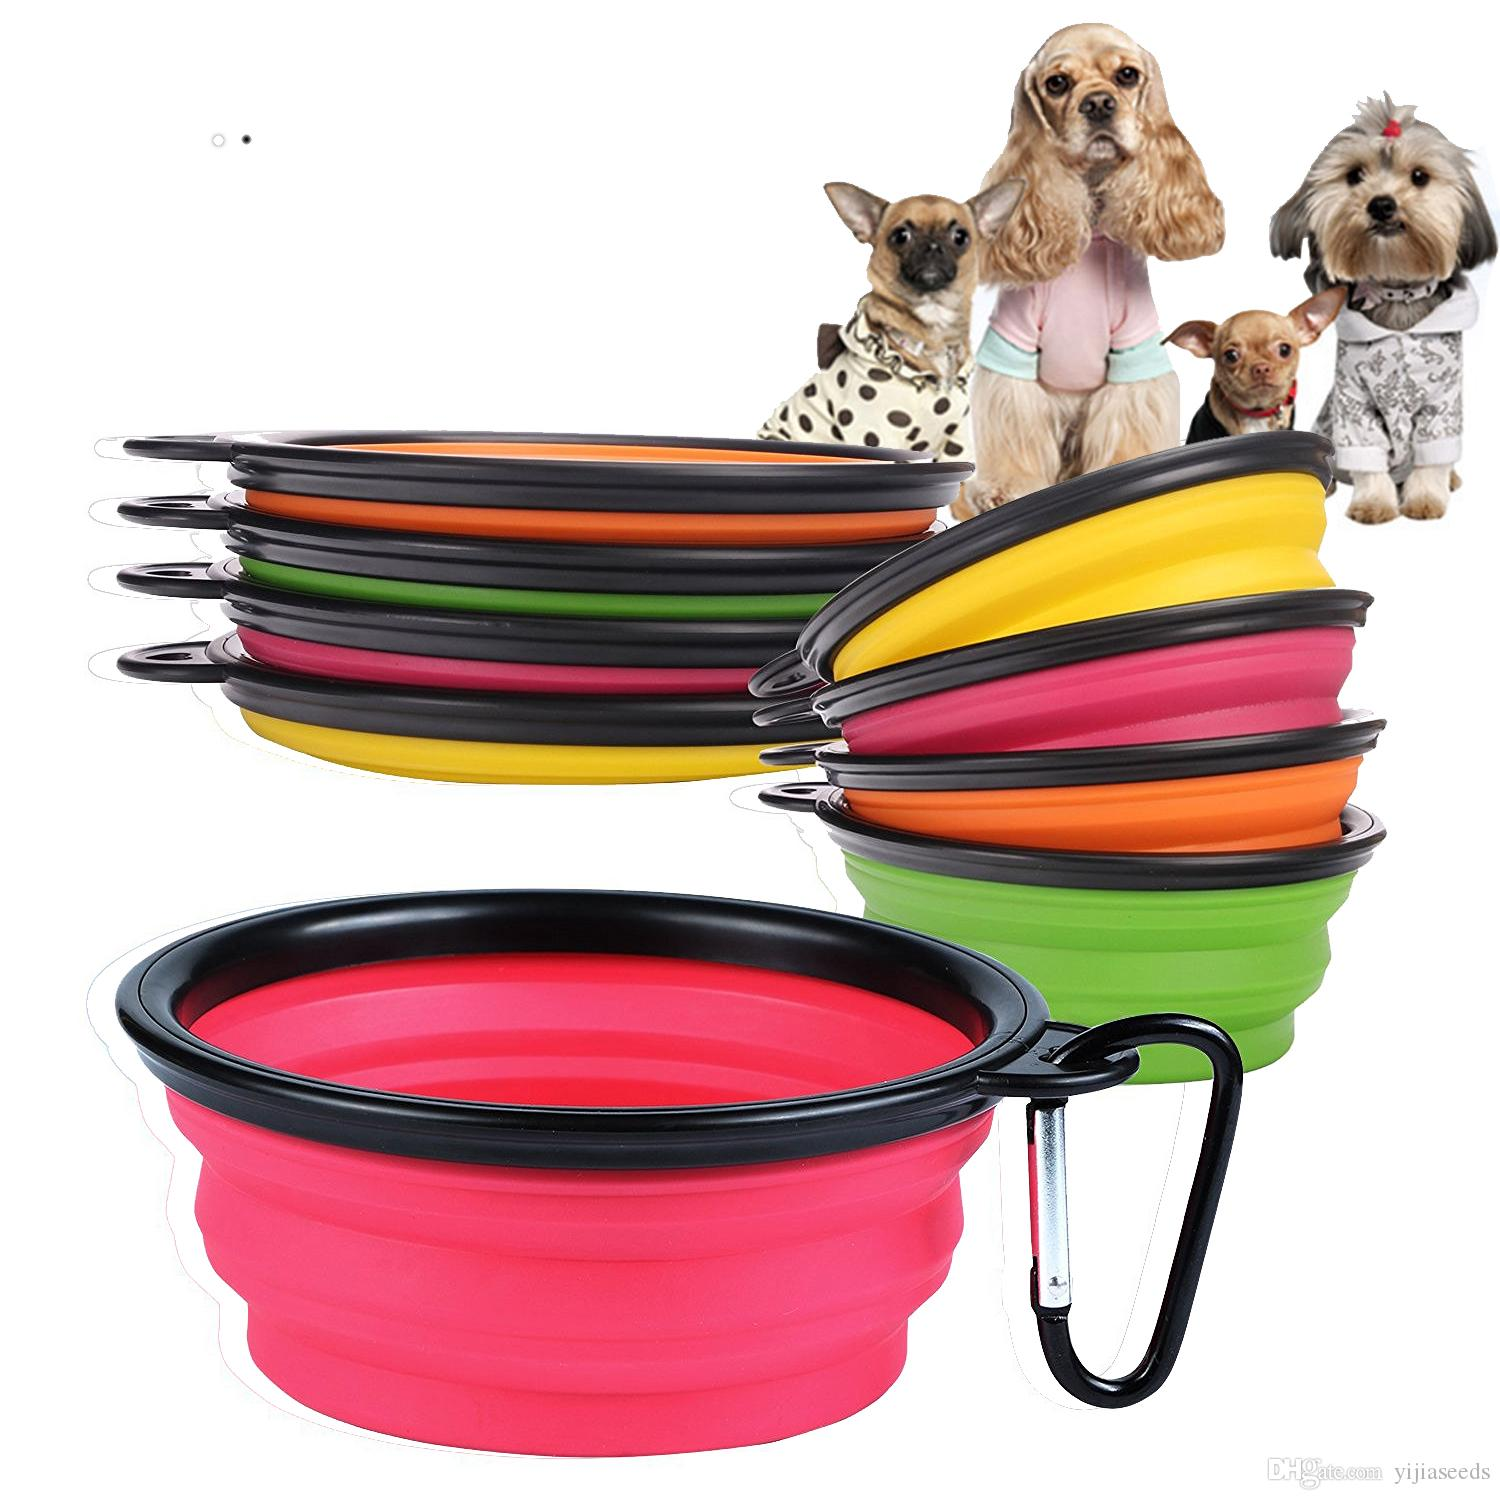 Portable Dog Water Bowl >> 2019 Pet Products Silicone Bowl Pet Folding Portable Dog Bowls